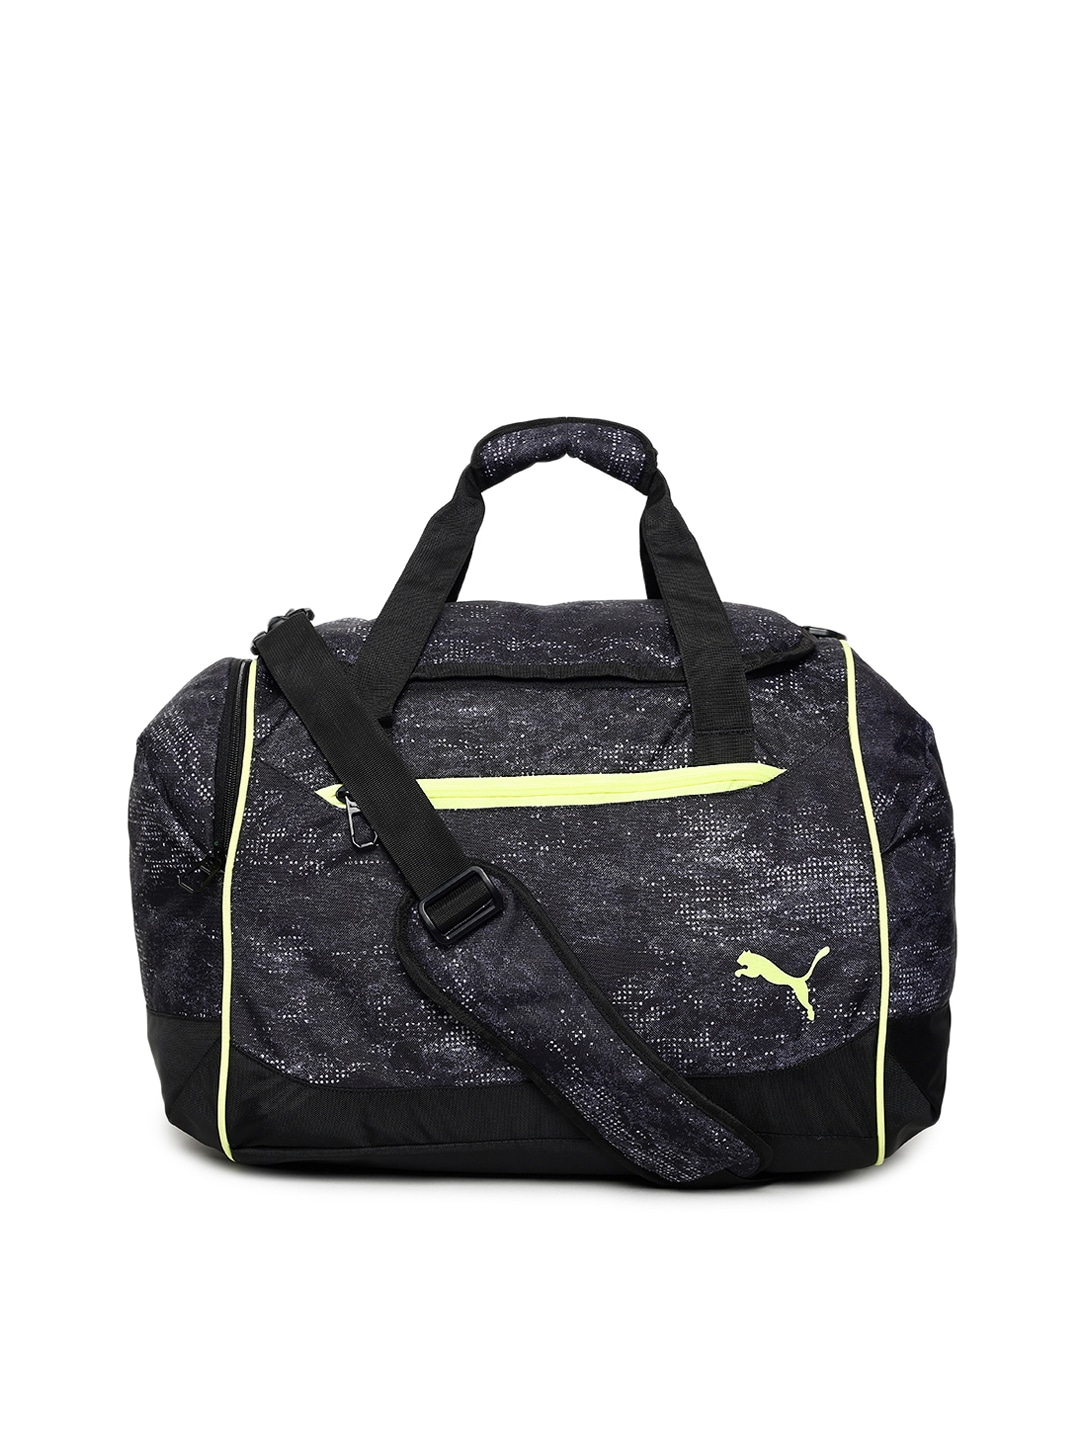 eff3362f6768 Puma Ferrari Bag - Buy Puma Ferrari Bag online in India